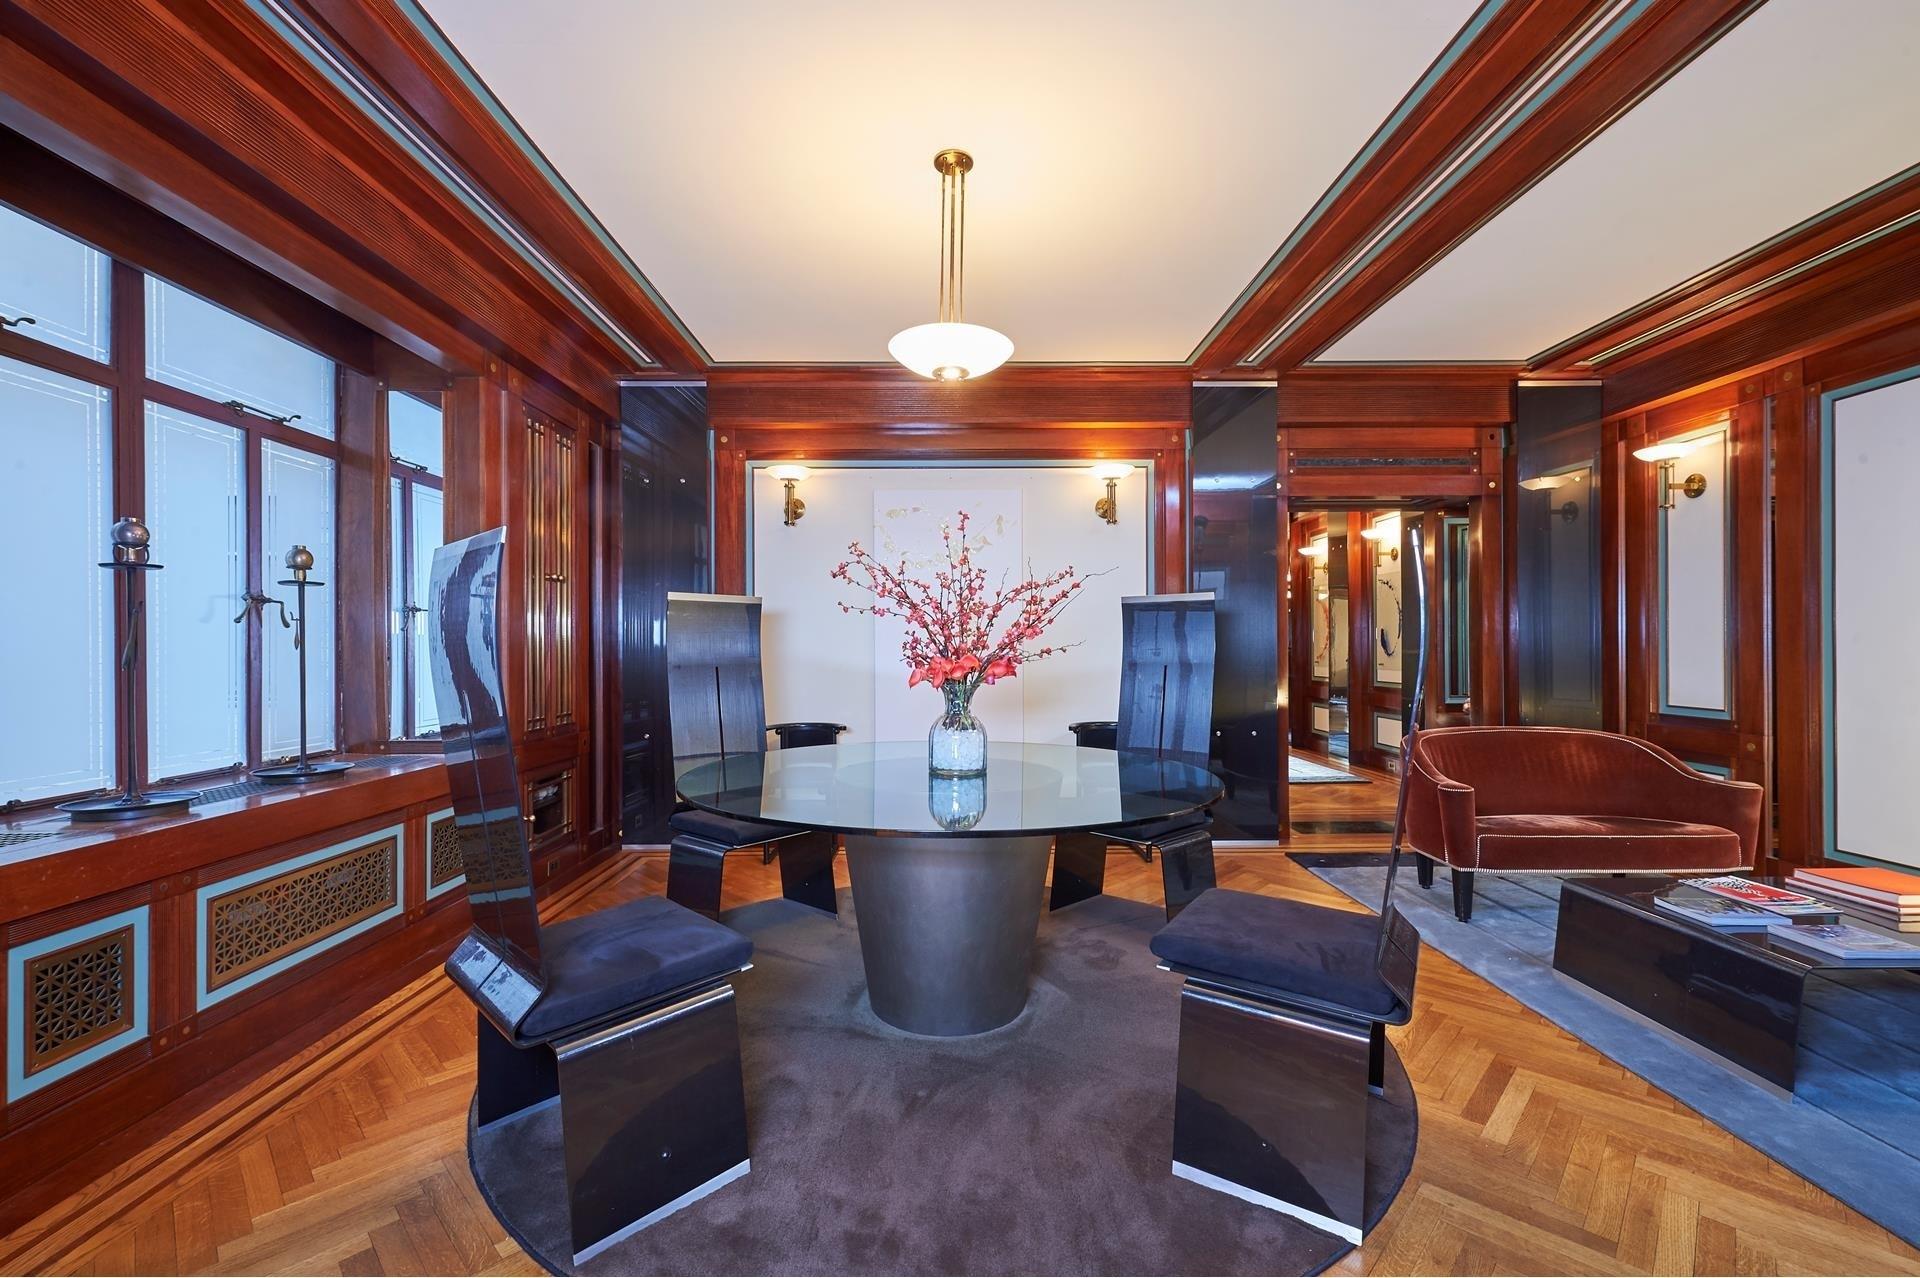 Property at THE BERESFORD, 211 Central Park West, 6B Upper West Side, New York, NY 10024